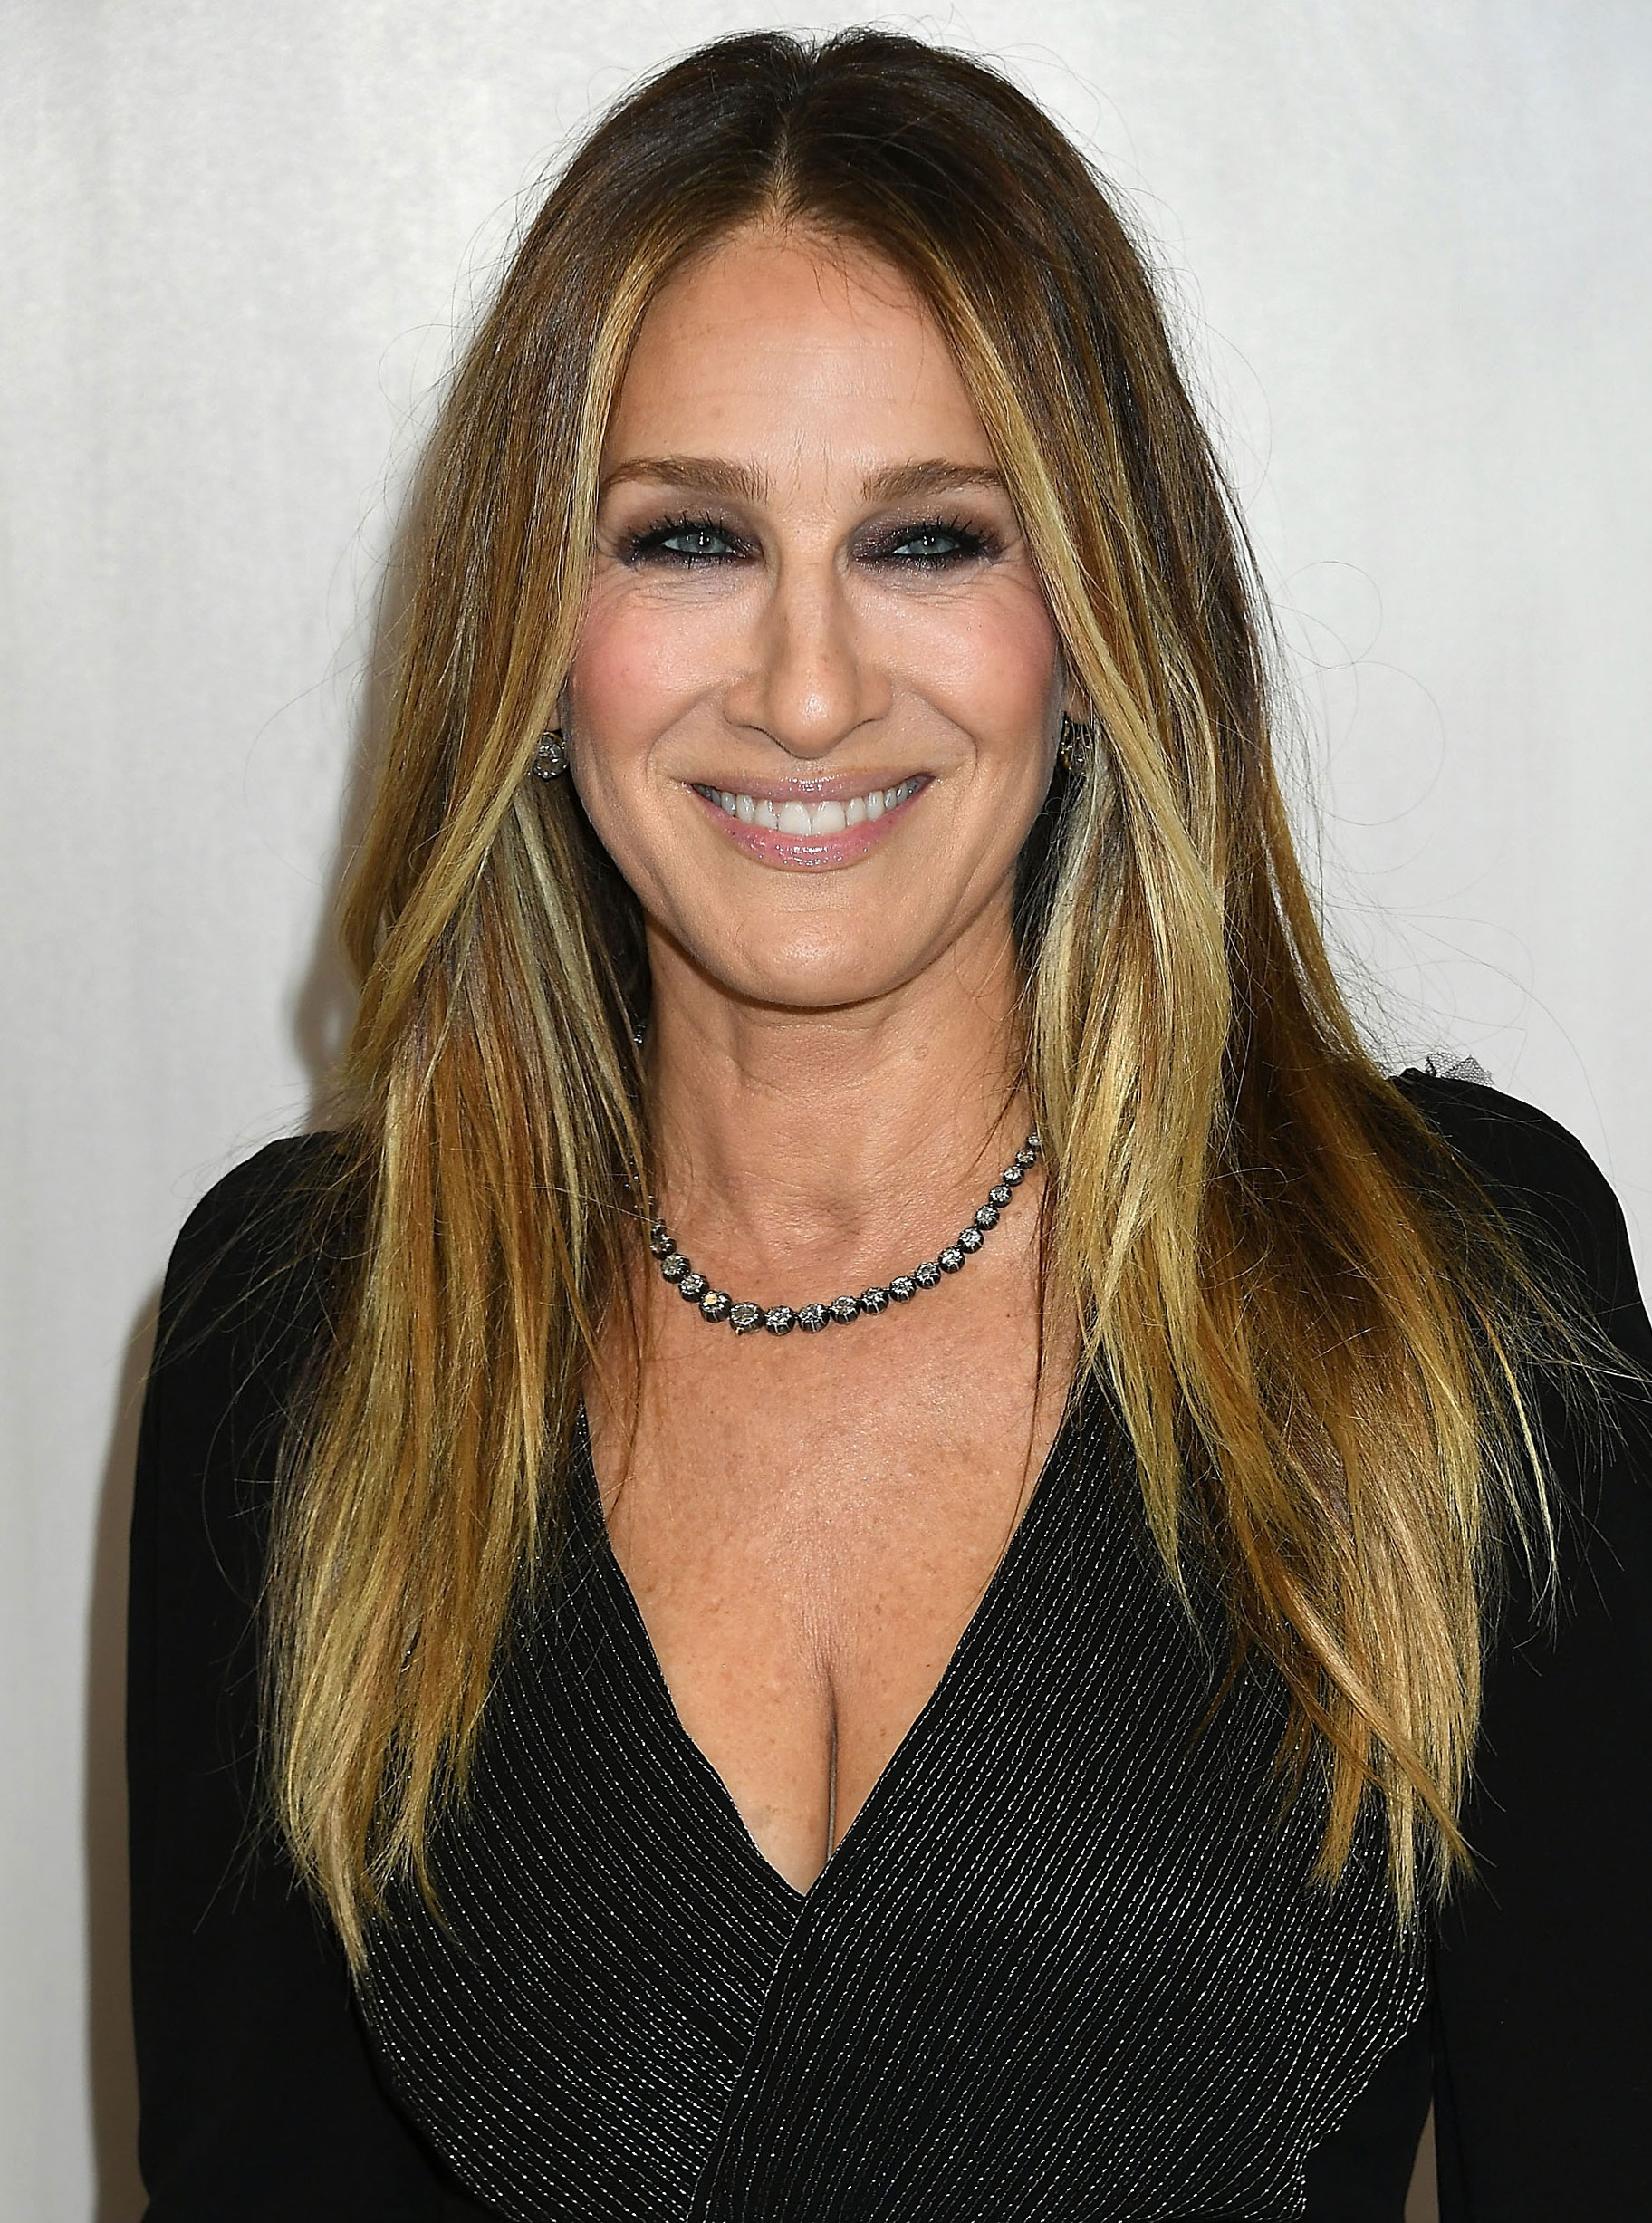 Sarah Jessica Parker Debuts New Bangs   Instyle With Regard To Sarah Jessica Parker Short Hairstyles (View 7 of 25)